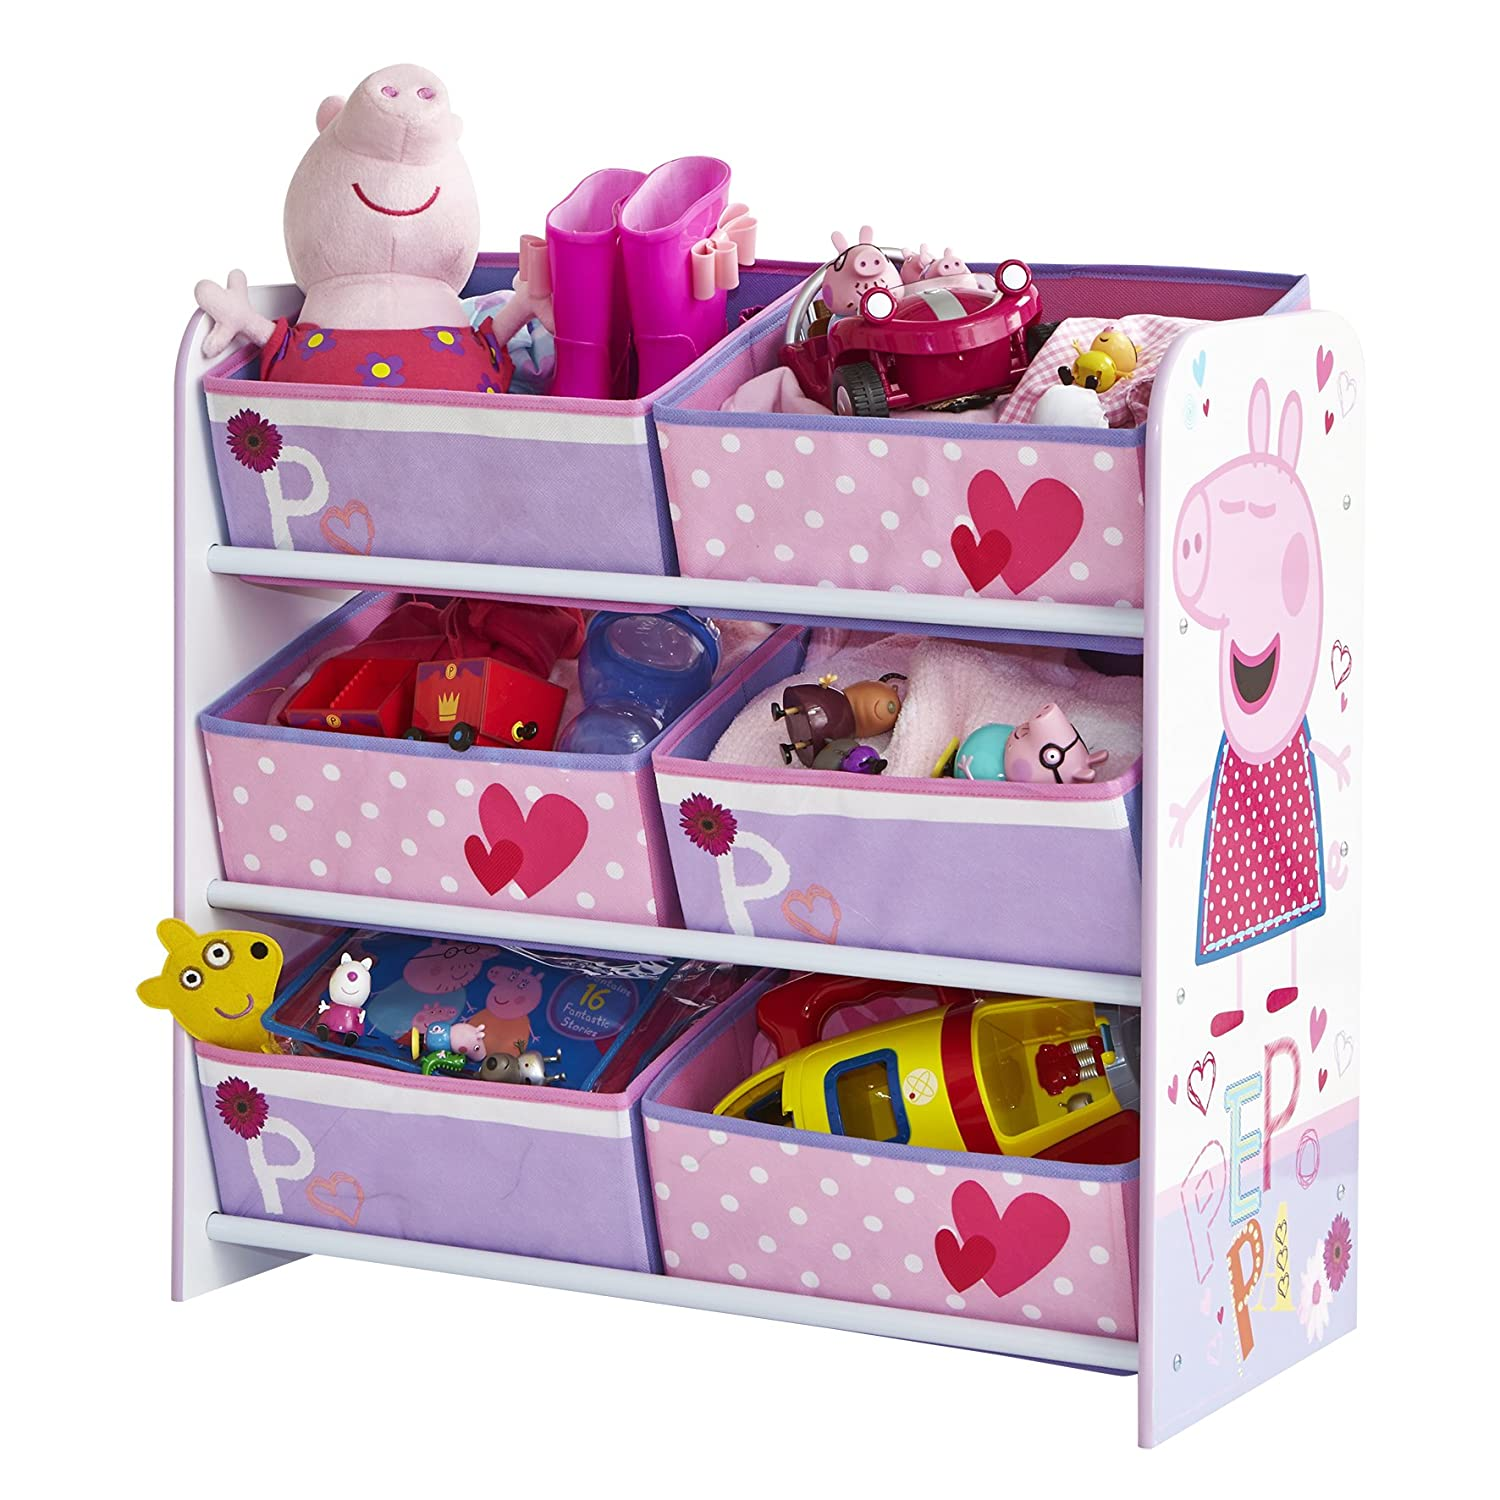 Peppa Pig Bedroom Accessories Peppa Pig Kids Storage Unit By Hellohome Amazoncouk Kitchen